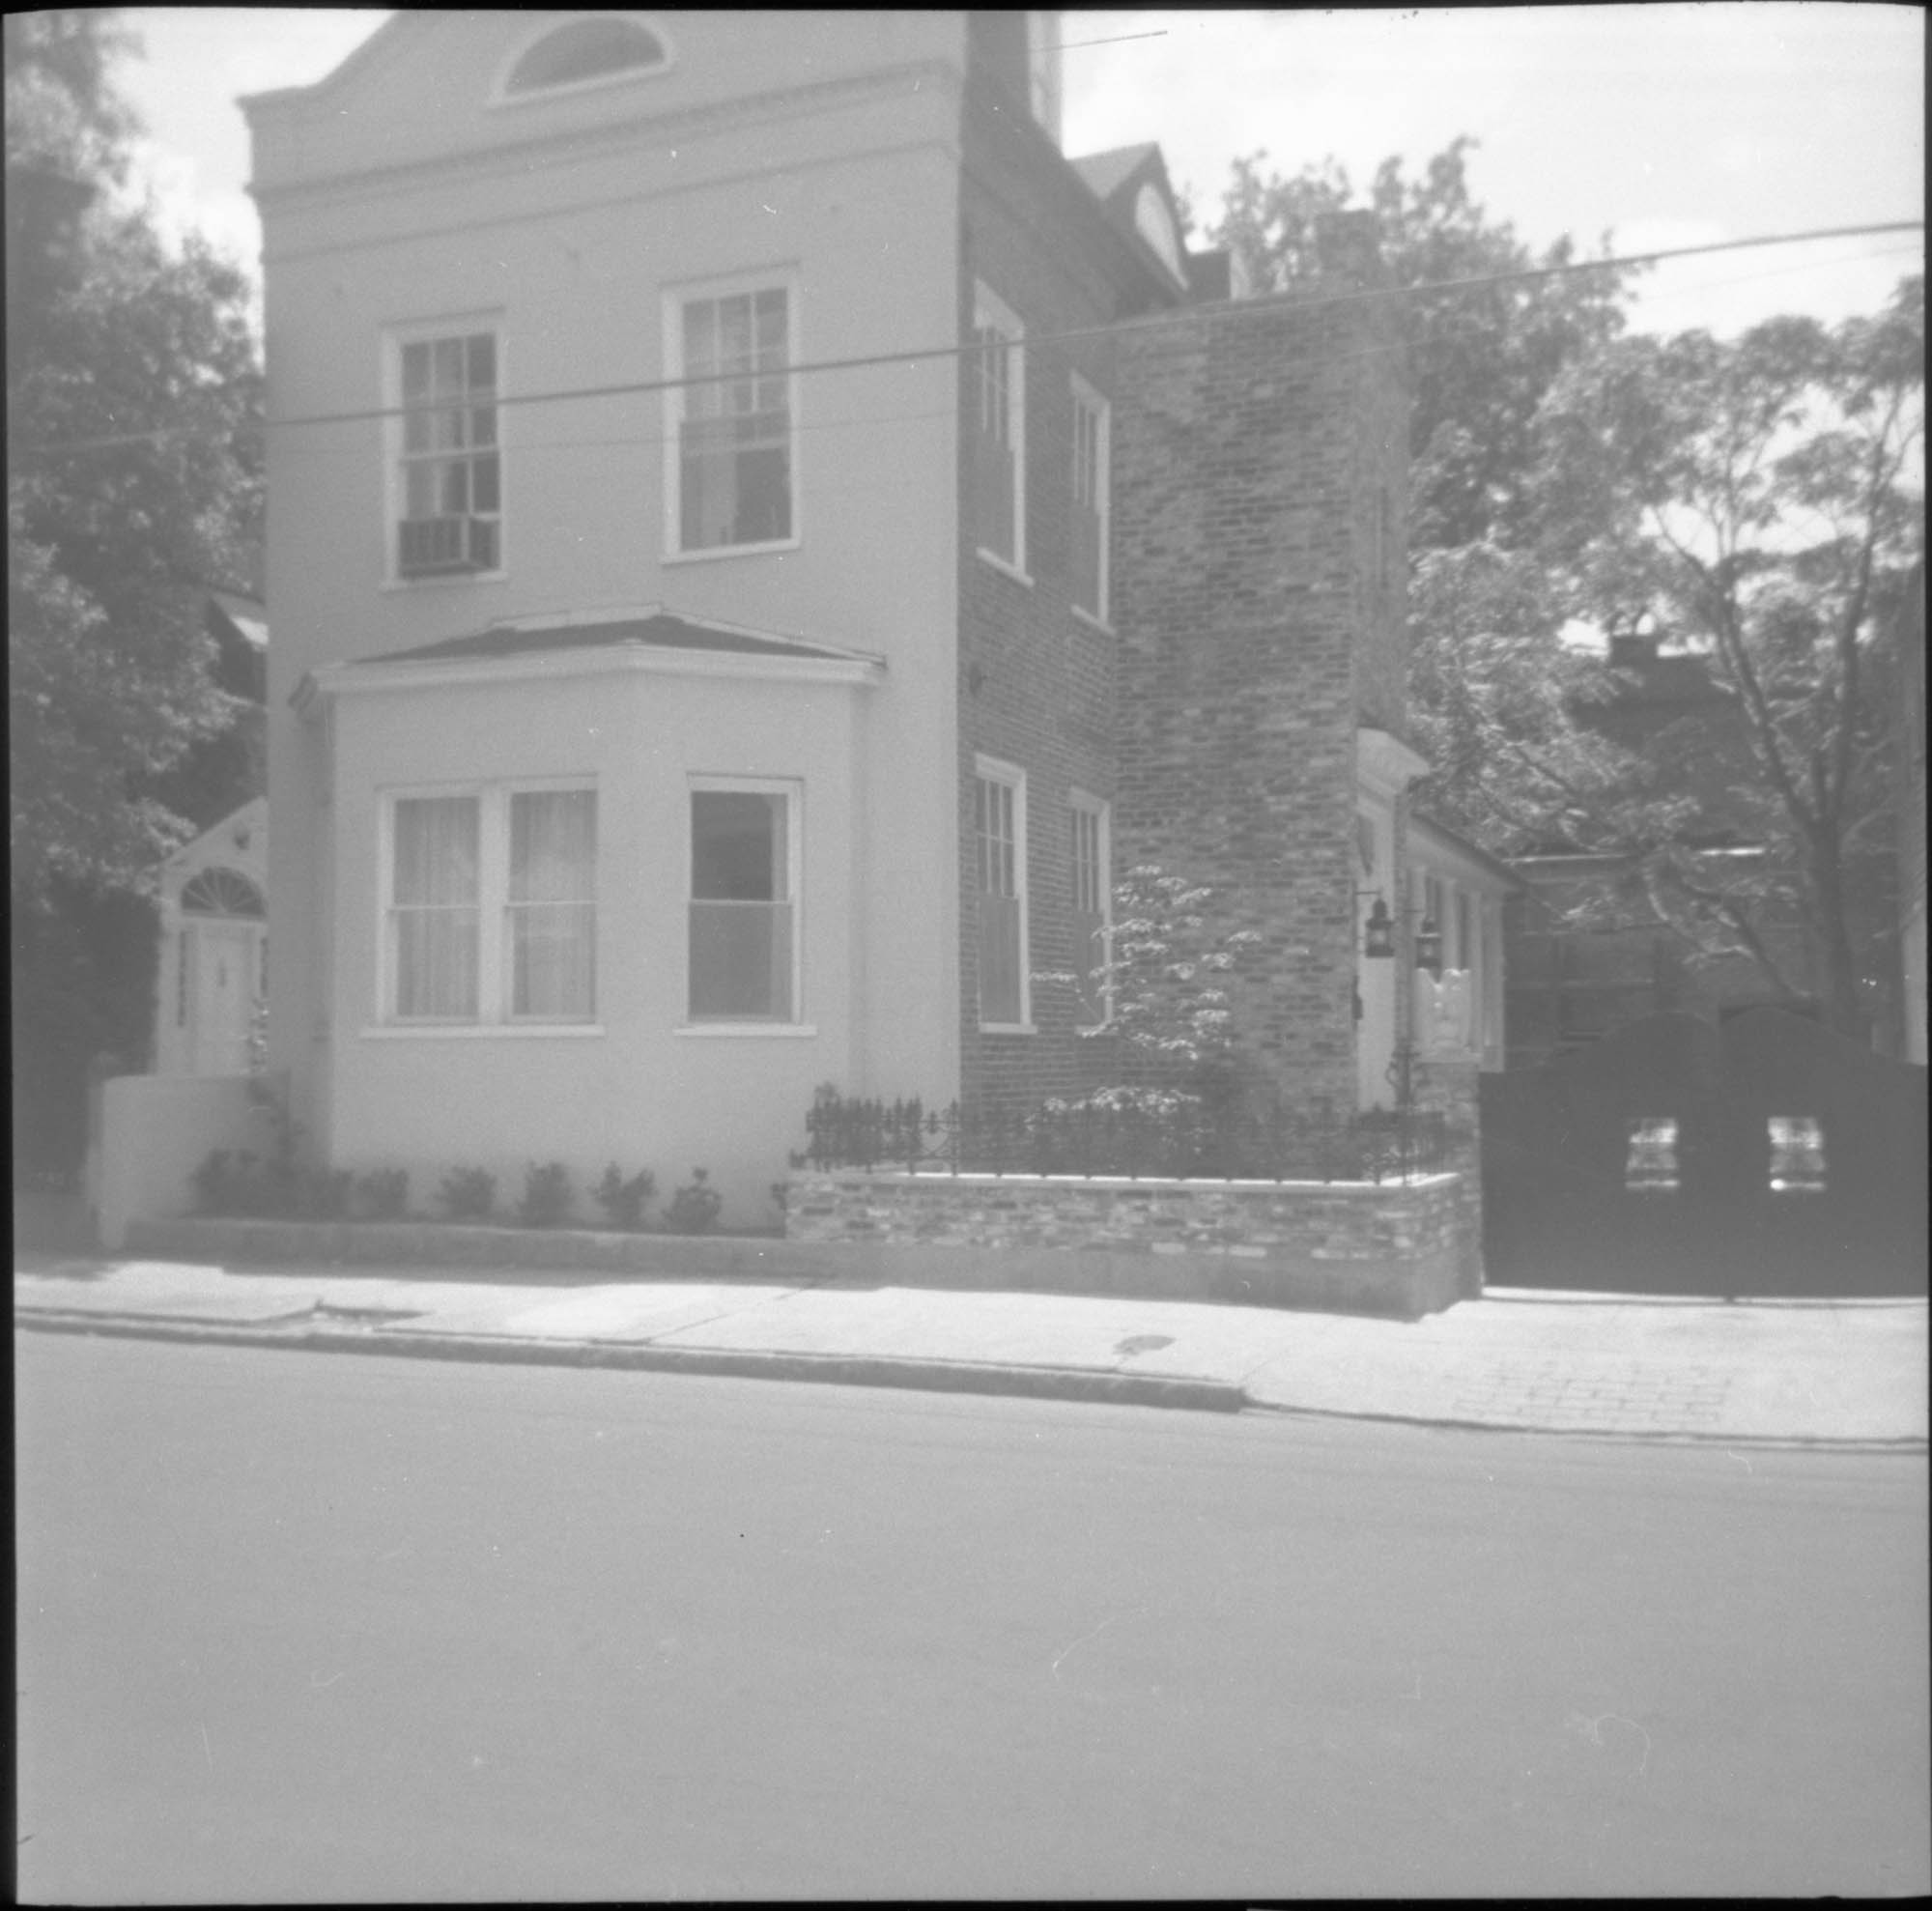 43 Hasell Street